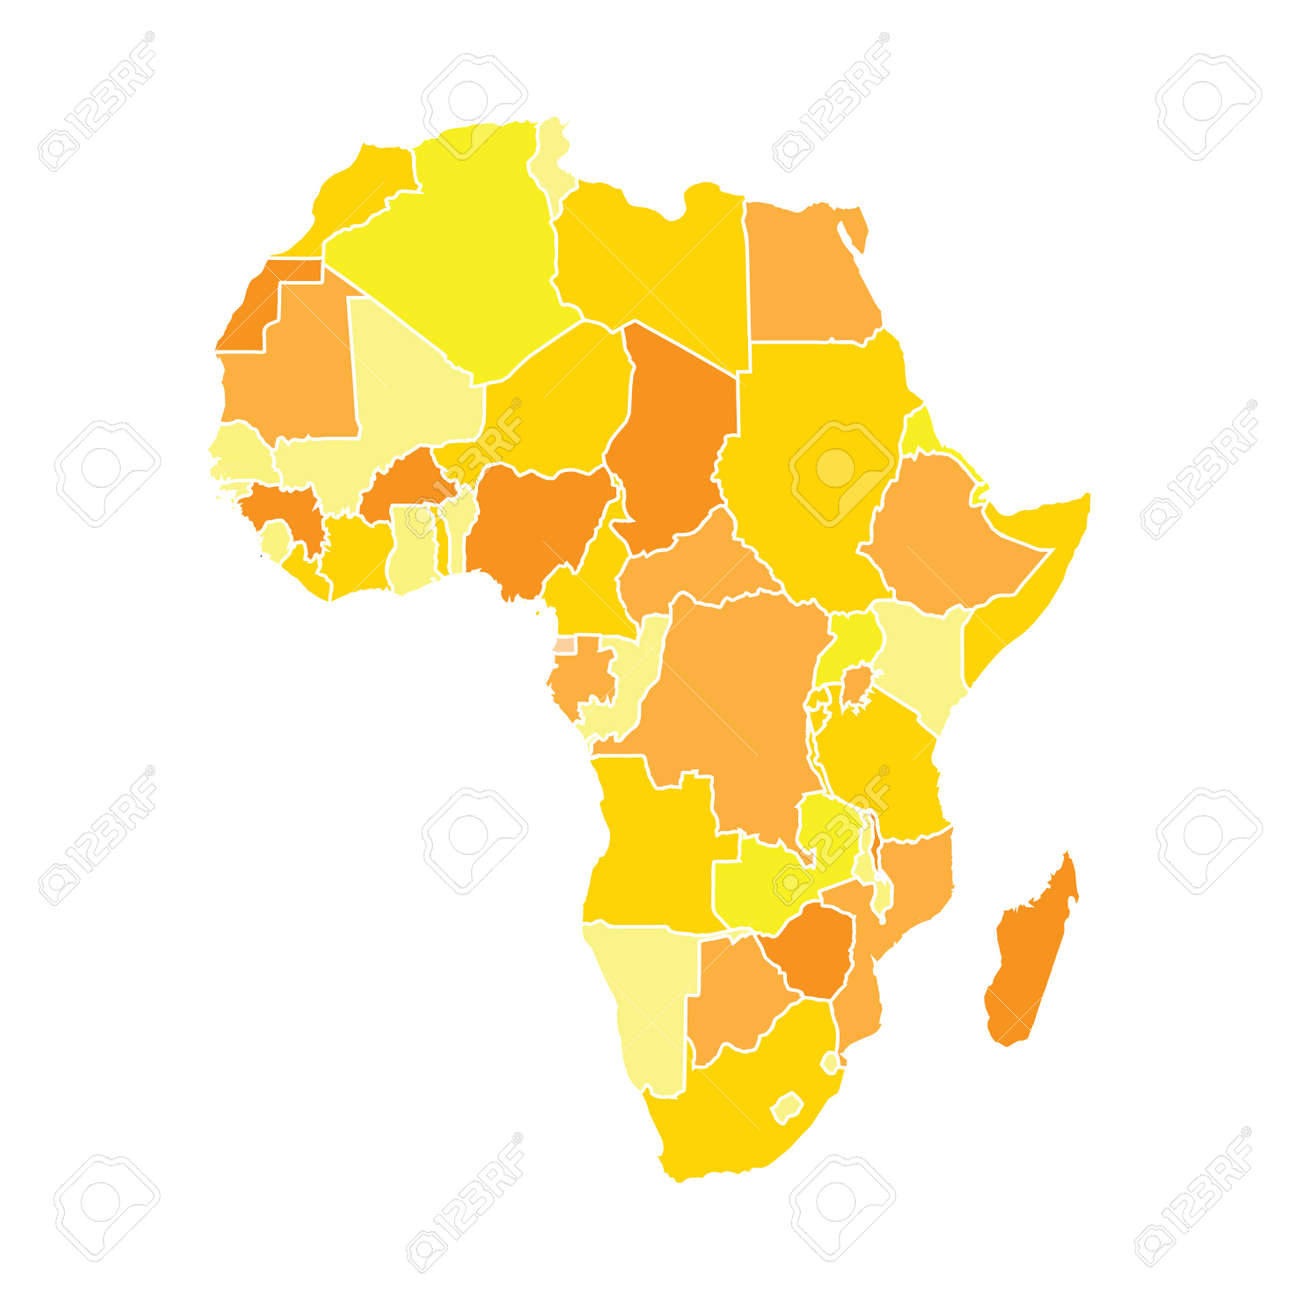 Africa Map Background.Africa Map In Yellow Colors Isolated On White Background Stock